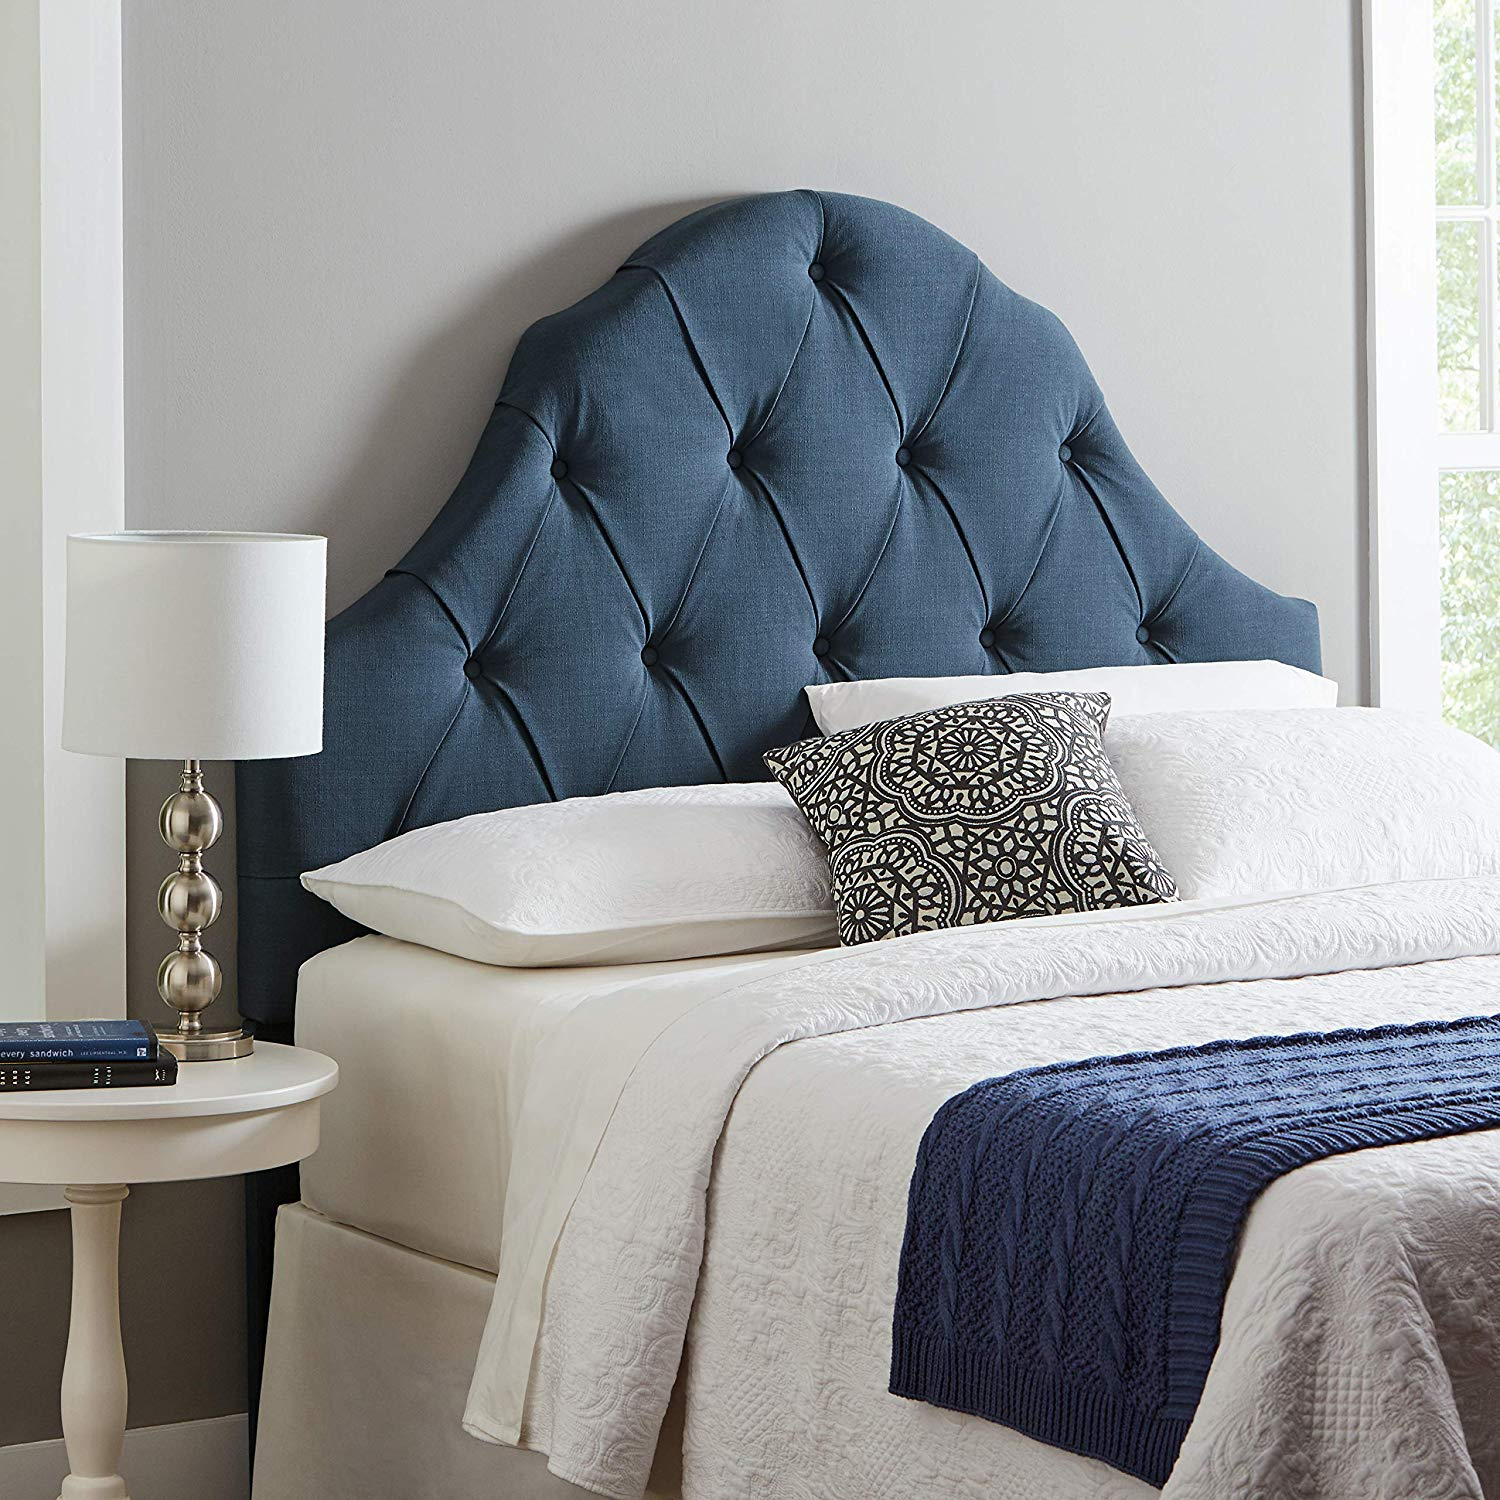 Blue tufted headboard on bed from Amazon